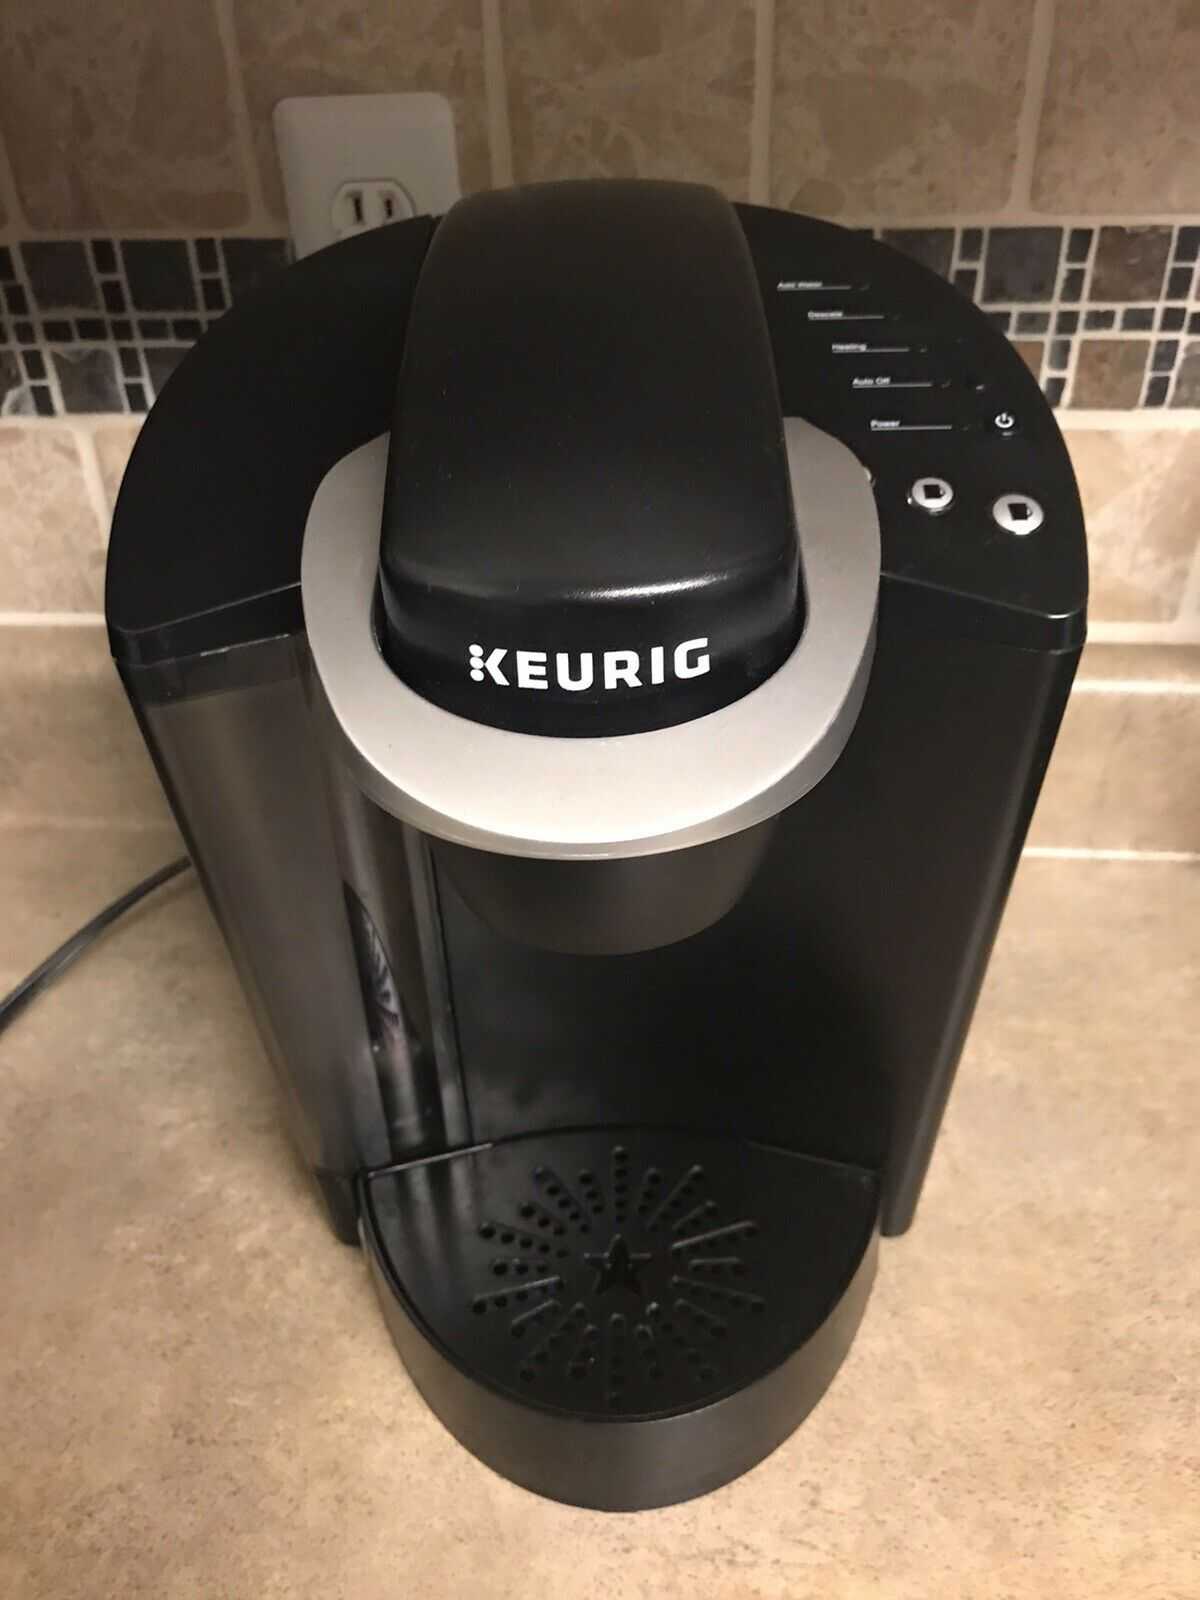 Details about Keurig Single Cup Brewing System Black KCup